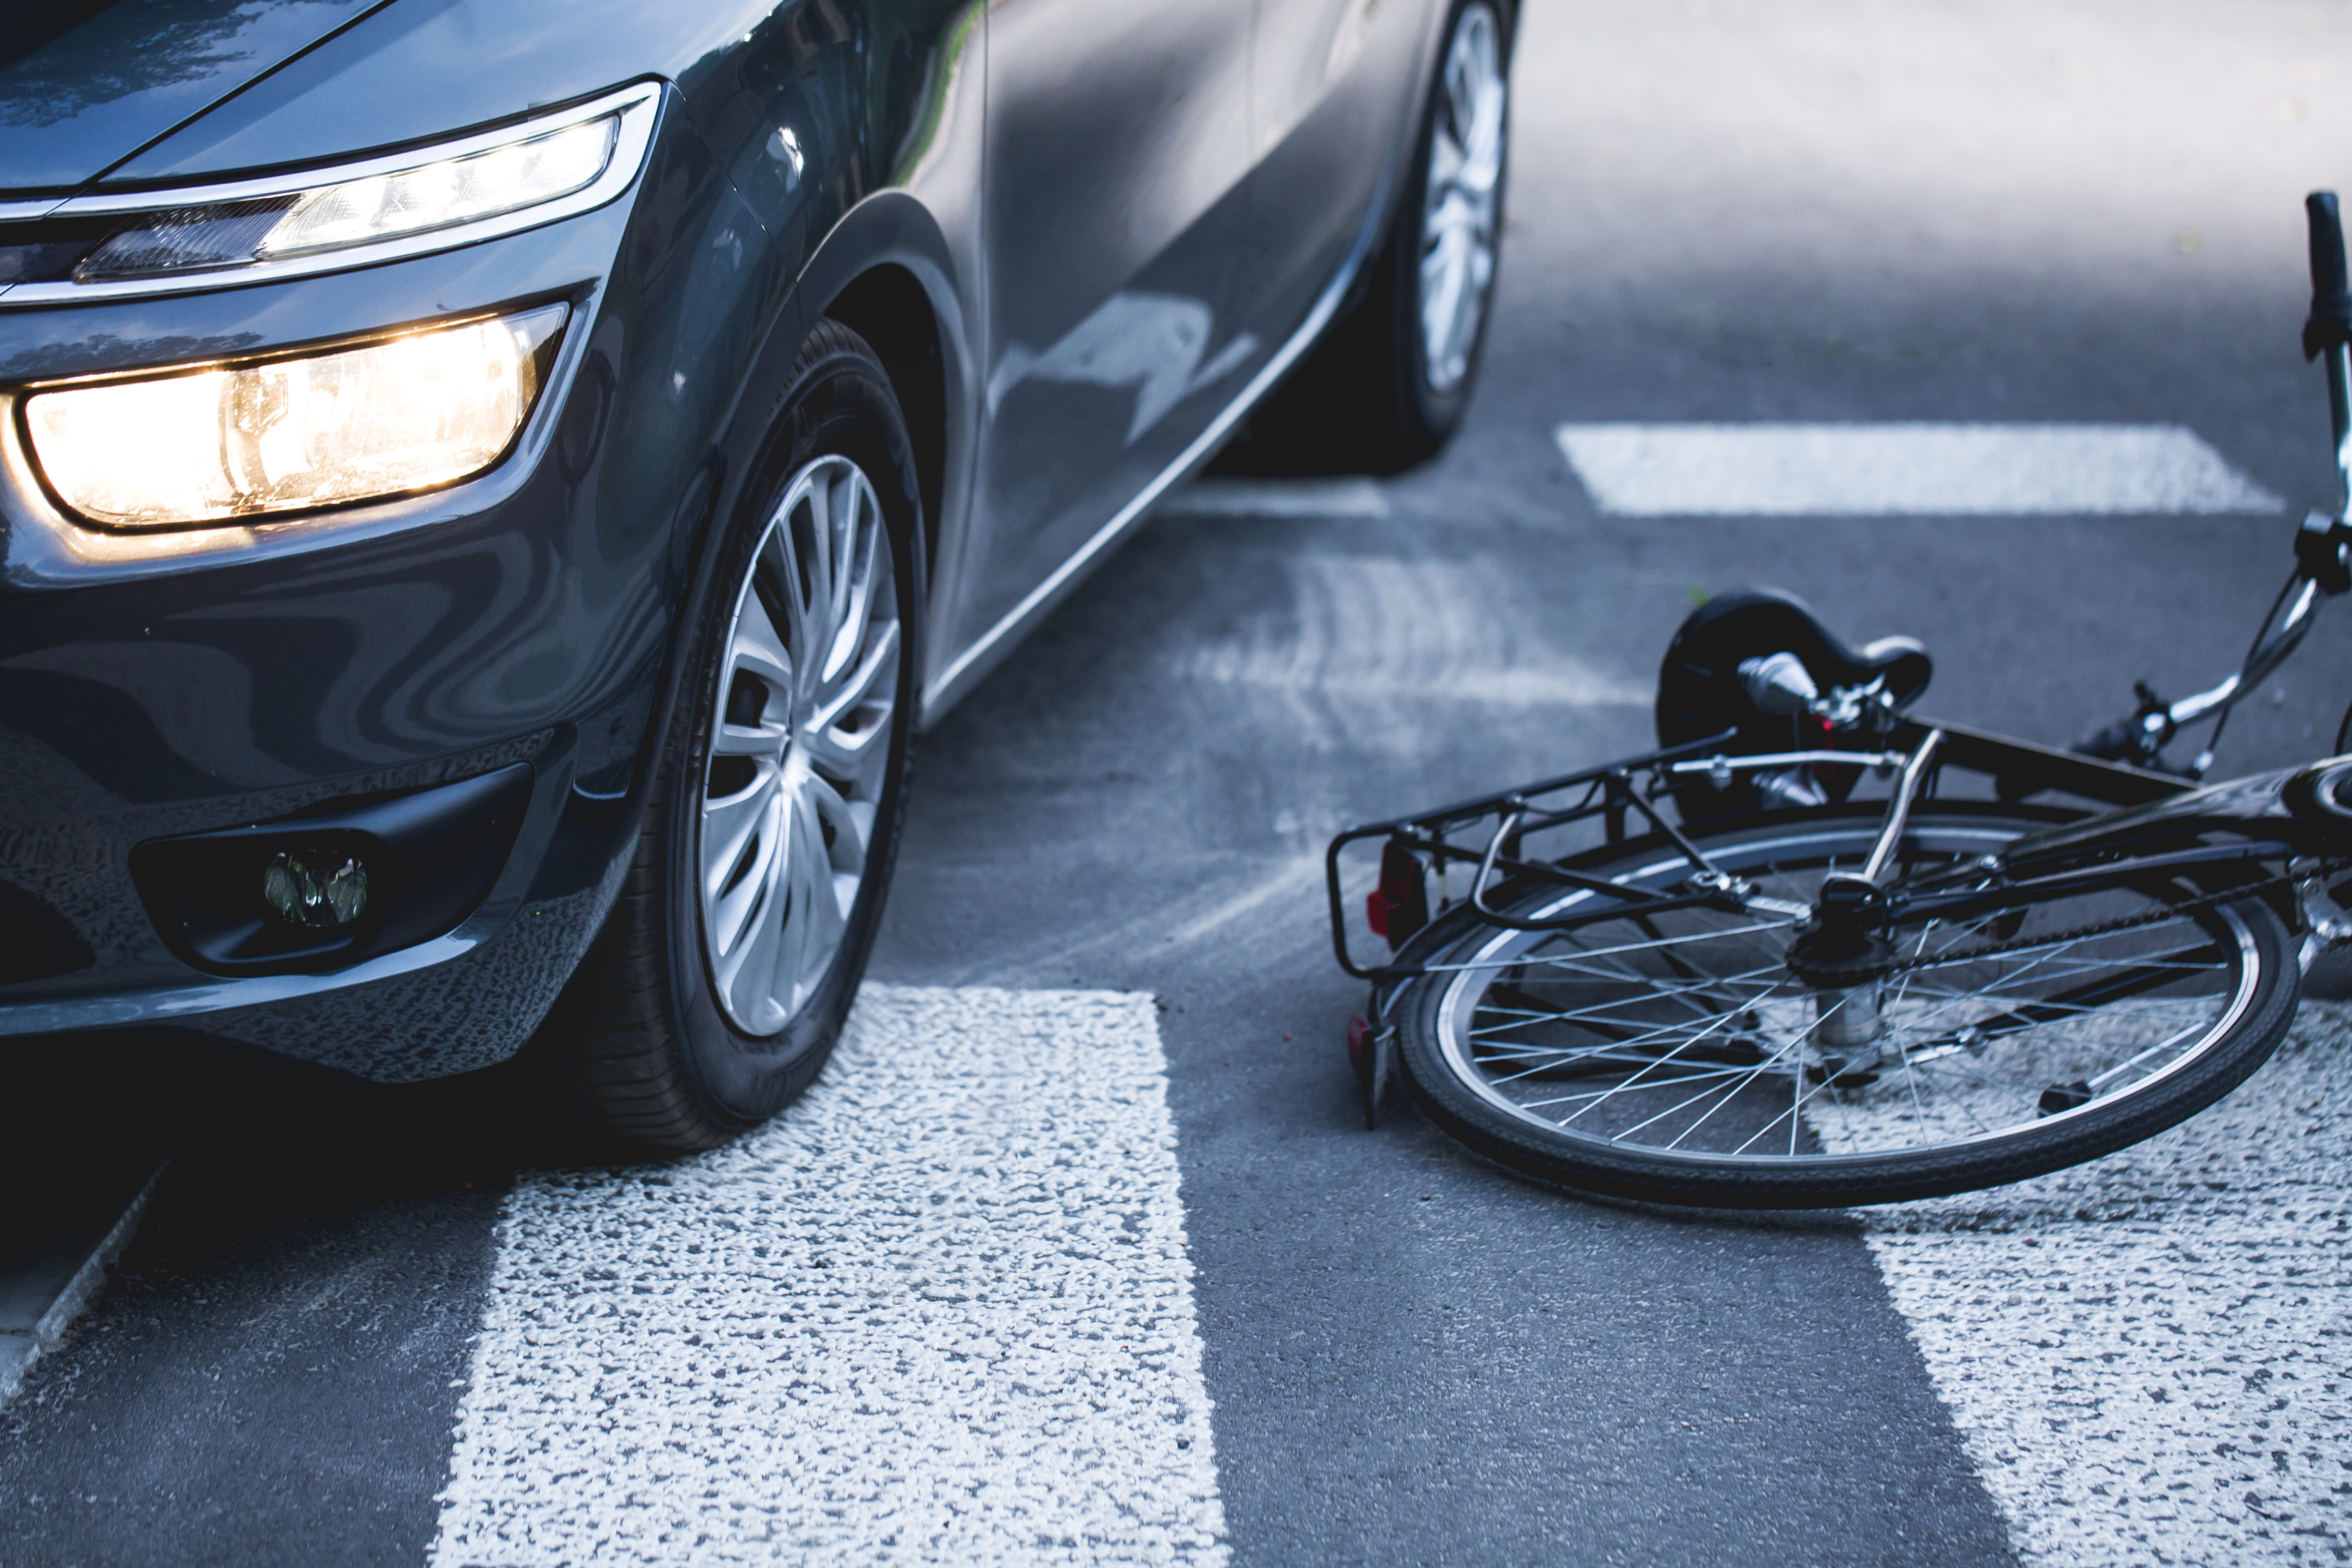 Everett Bicycle Accident Attorney - Snohomish Law Group : Personal